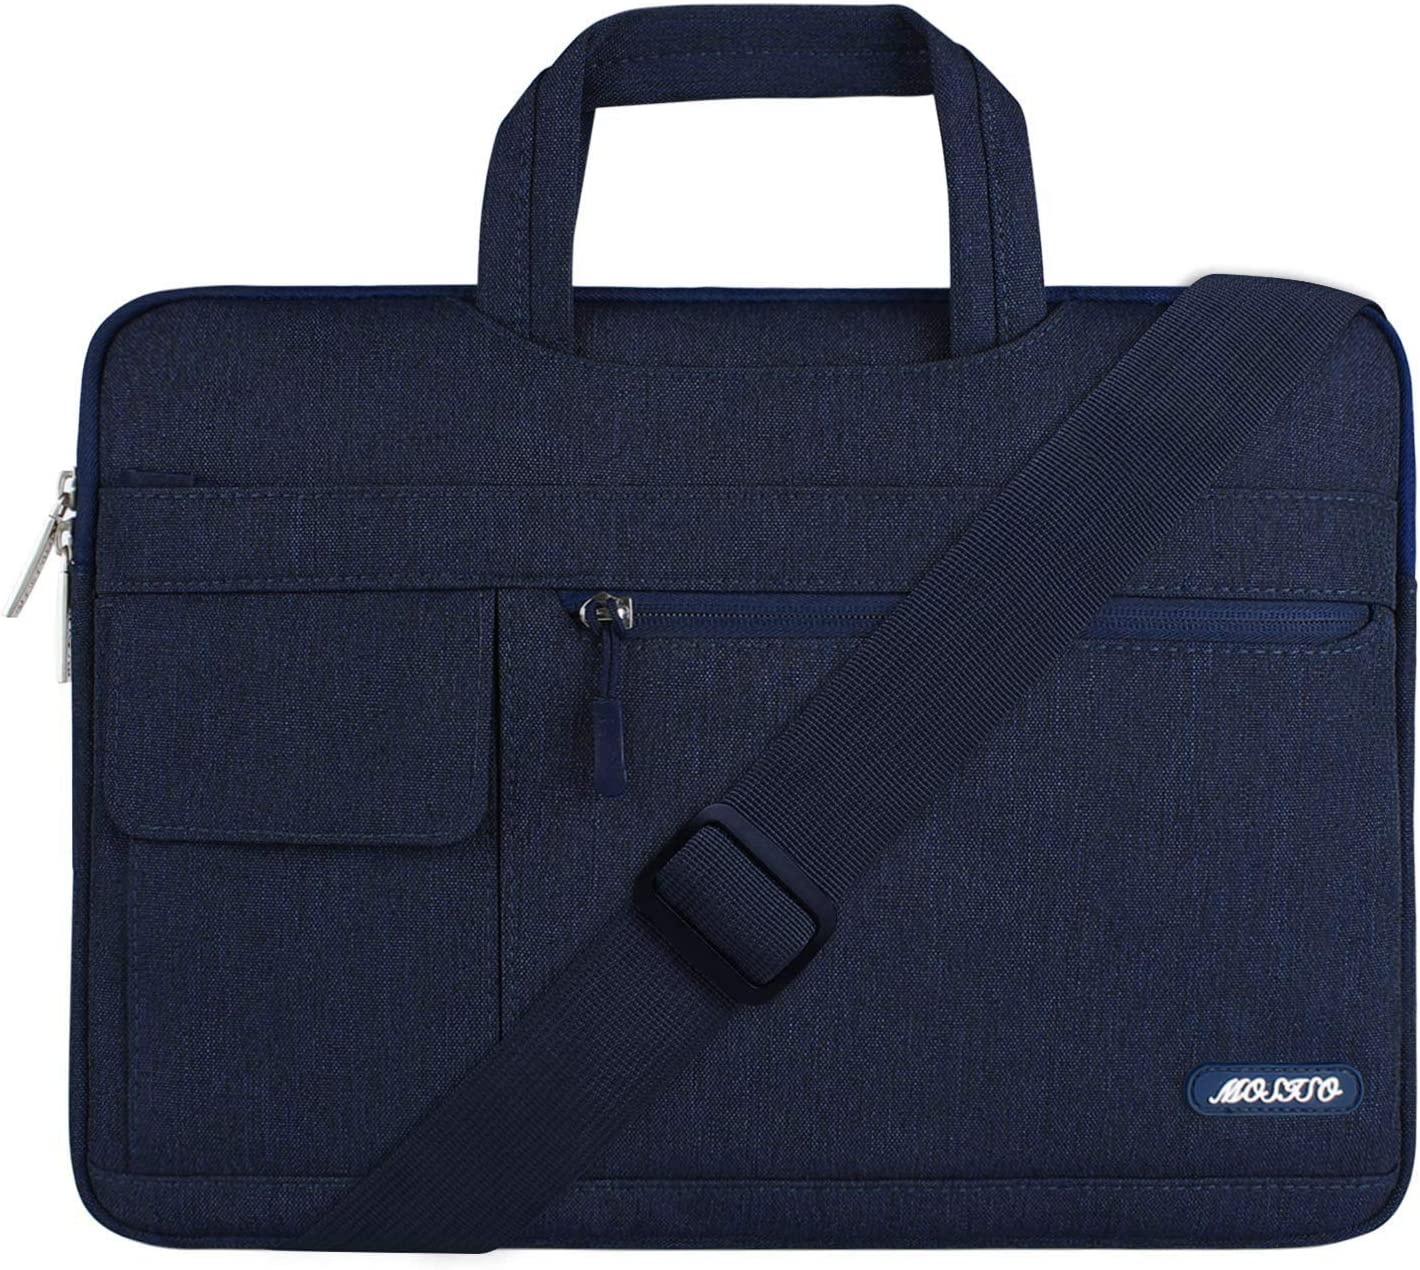 MOSISO Laptop Shoulder Bag Compatible with 2019 MacBook Pro 16 inch A2141, 15 15.4 15.6 inch Dell Lenovo HP Asus Acer Samsung Sony Chromebook, Polyester Flapover Briefcase Sleeve Case, Navy Blue